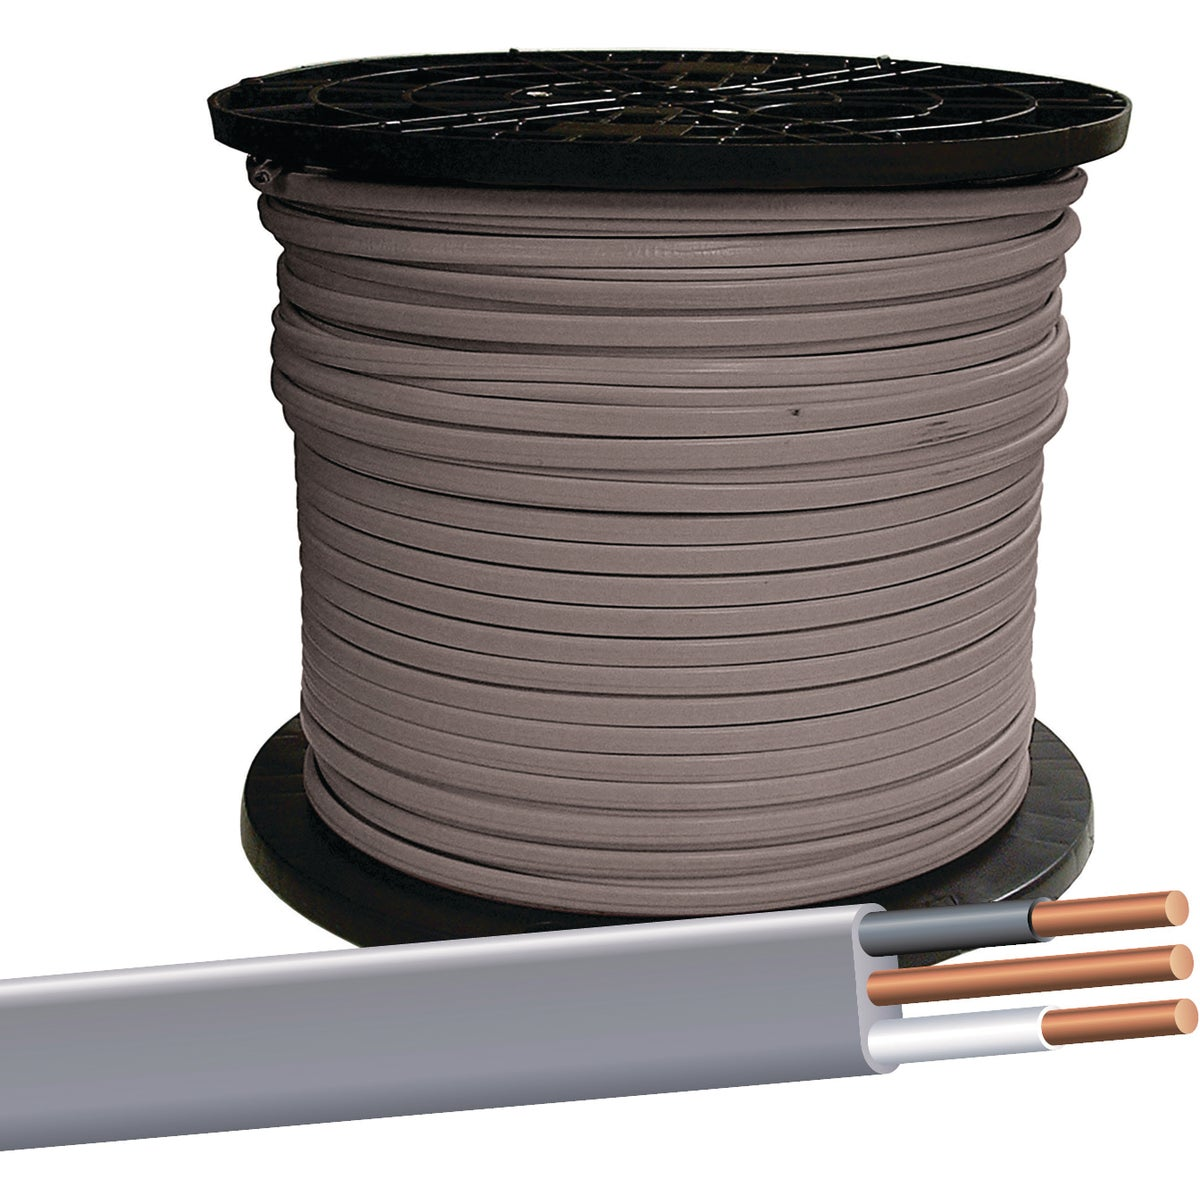 400' 14-2 UFW/G SPL WIRE - 13054272 by Southwire Company